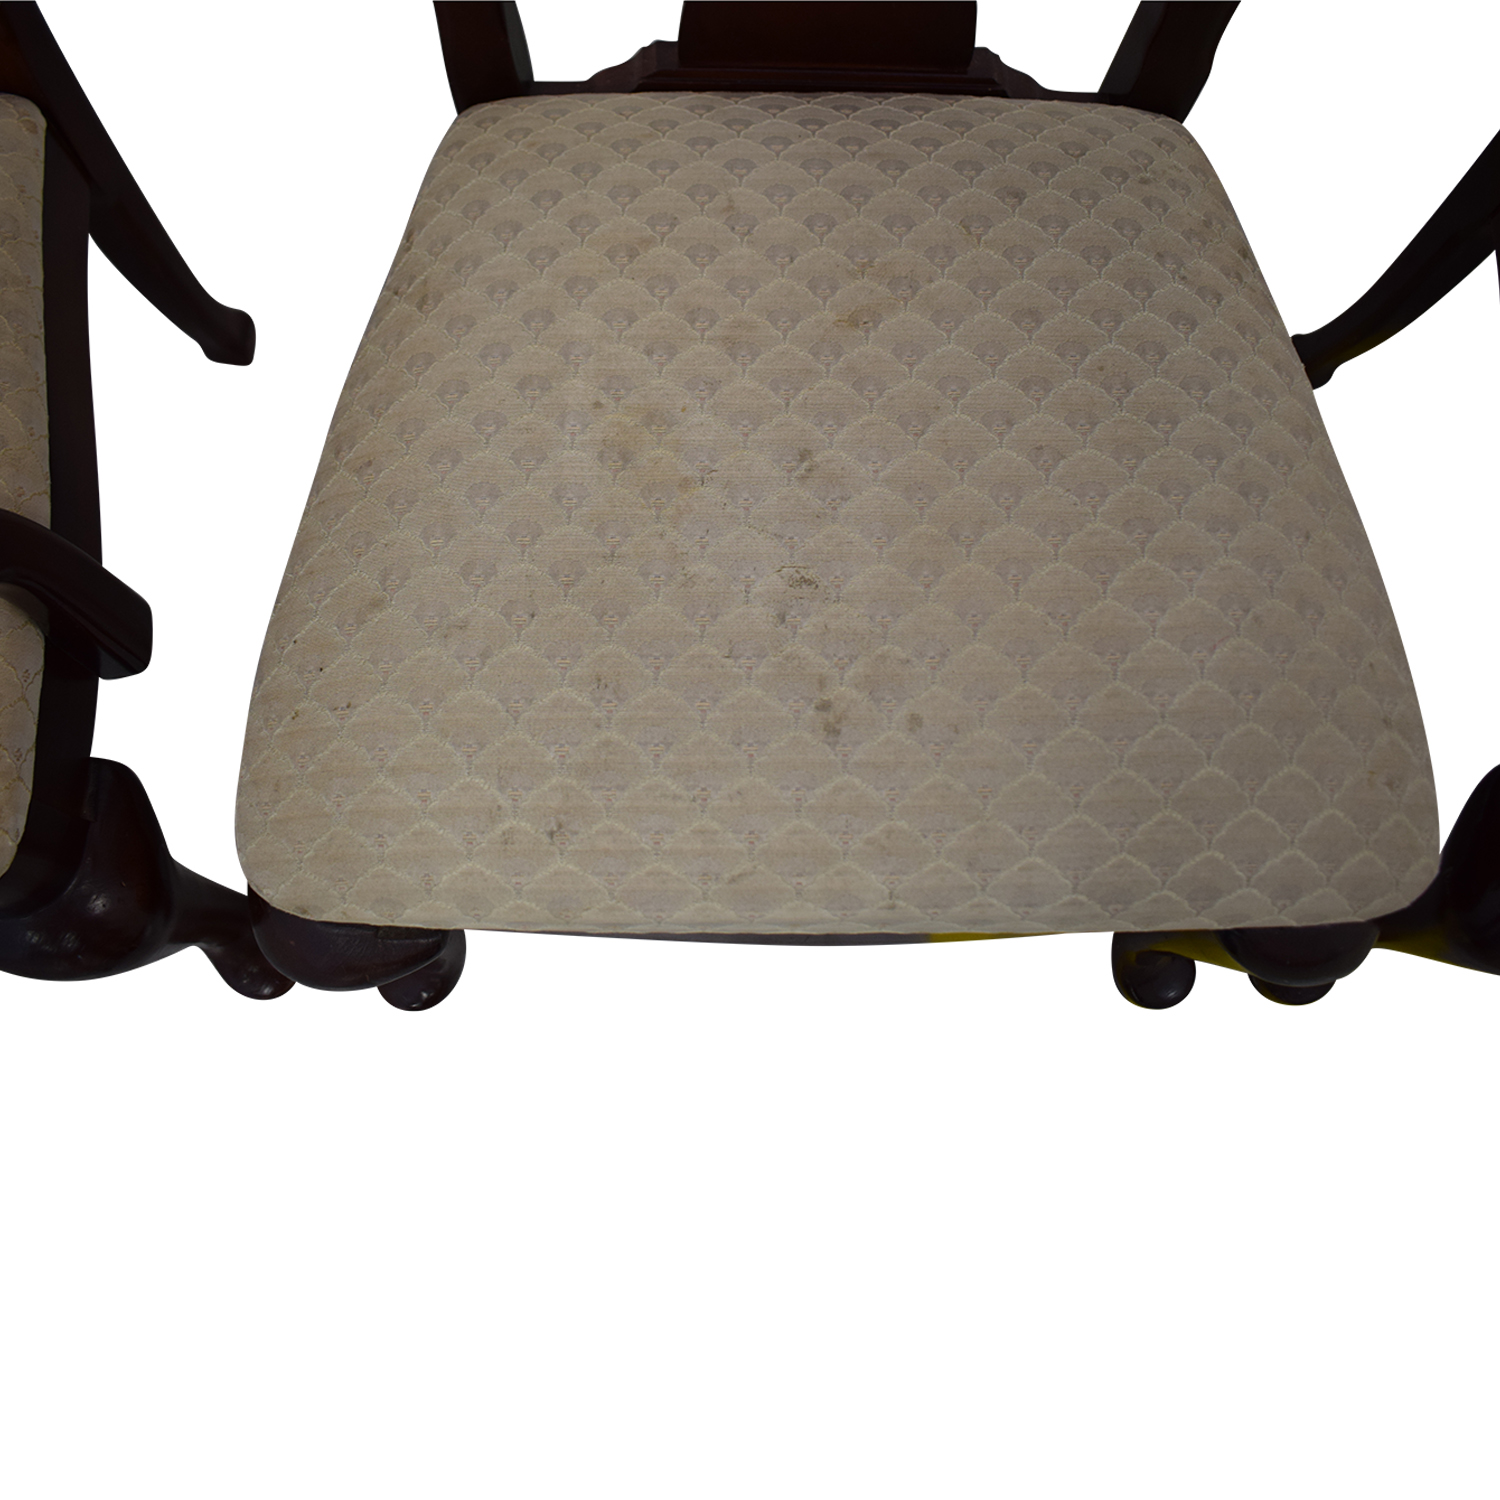 Thomasville Thomasville Traditional Queen Anne Style Dining Chairs second hand